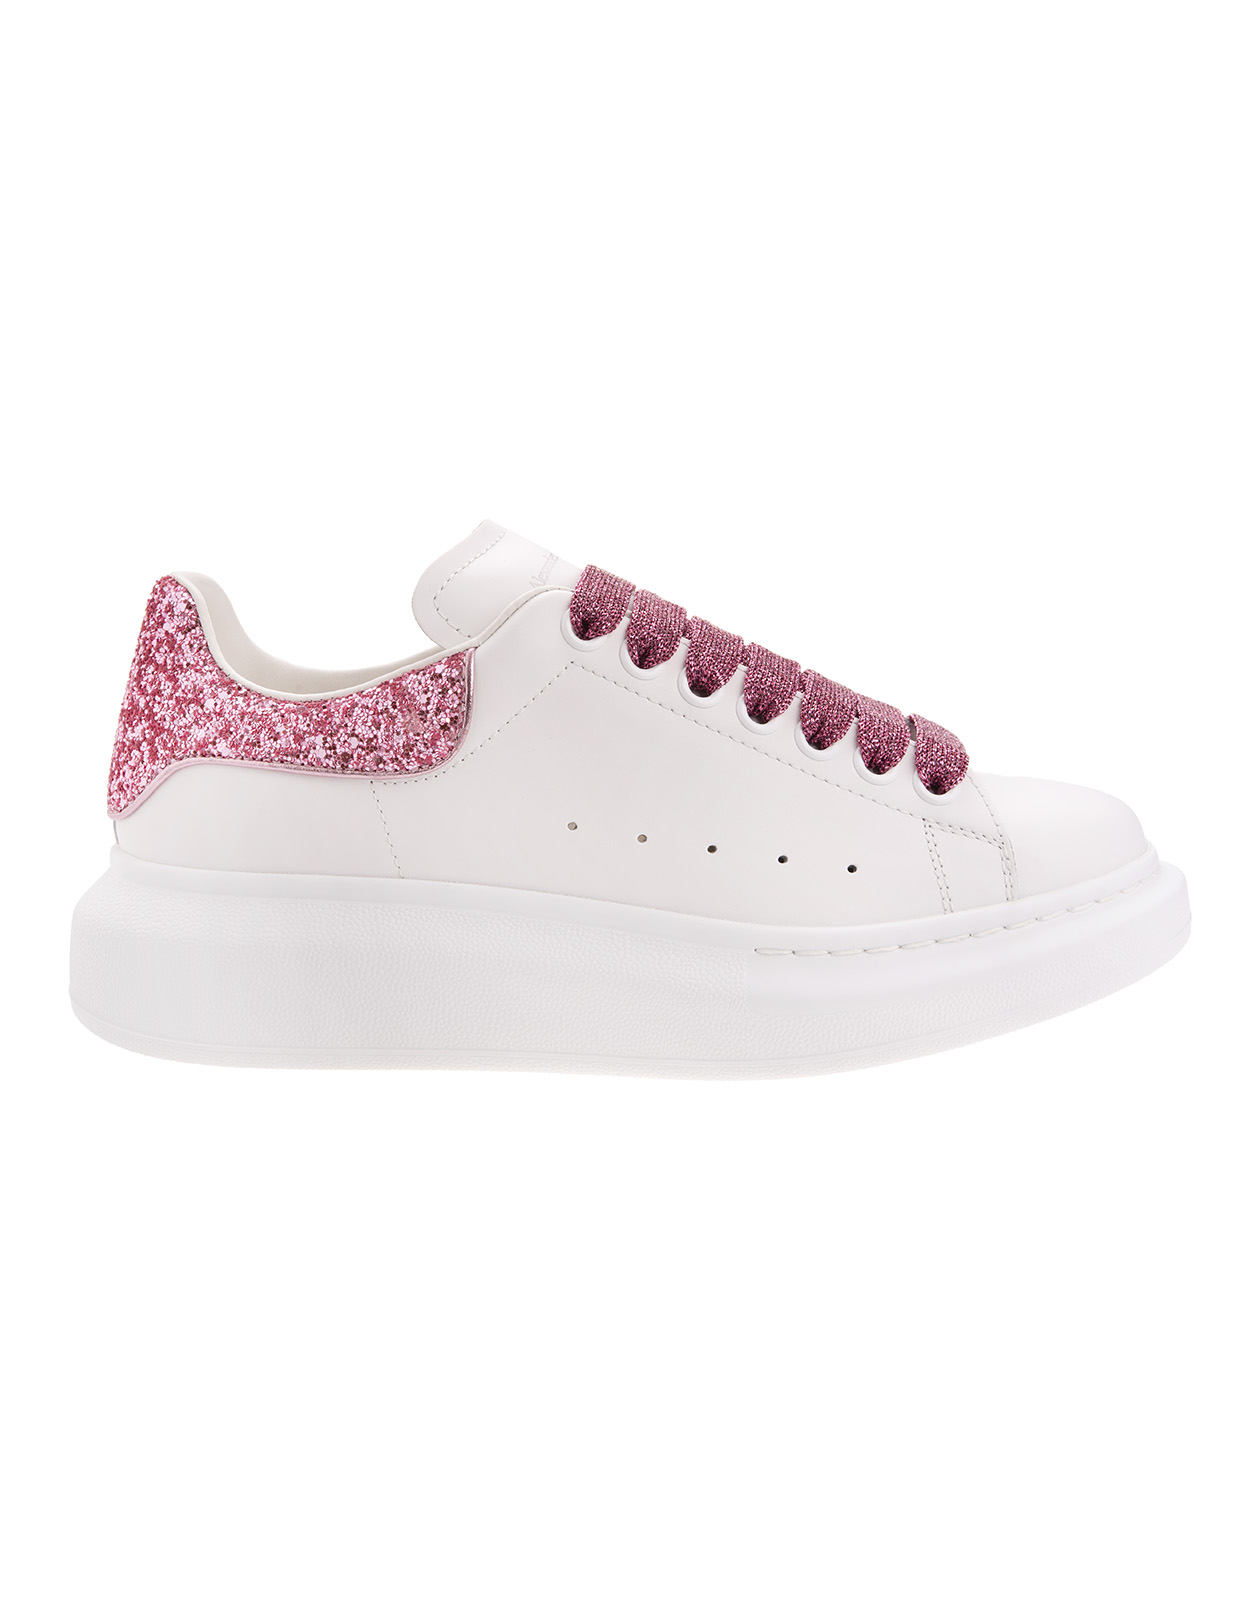 White Oversized Sneakers With Pink Glitter Details